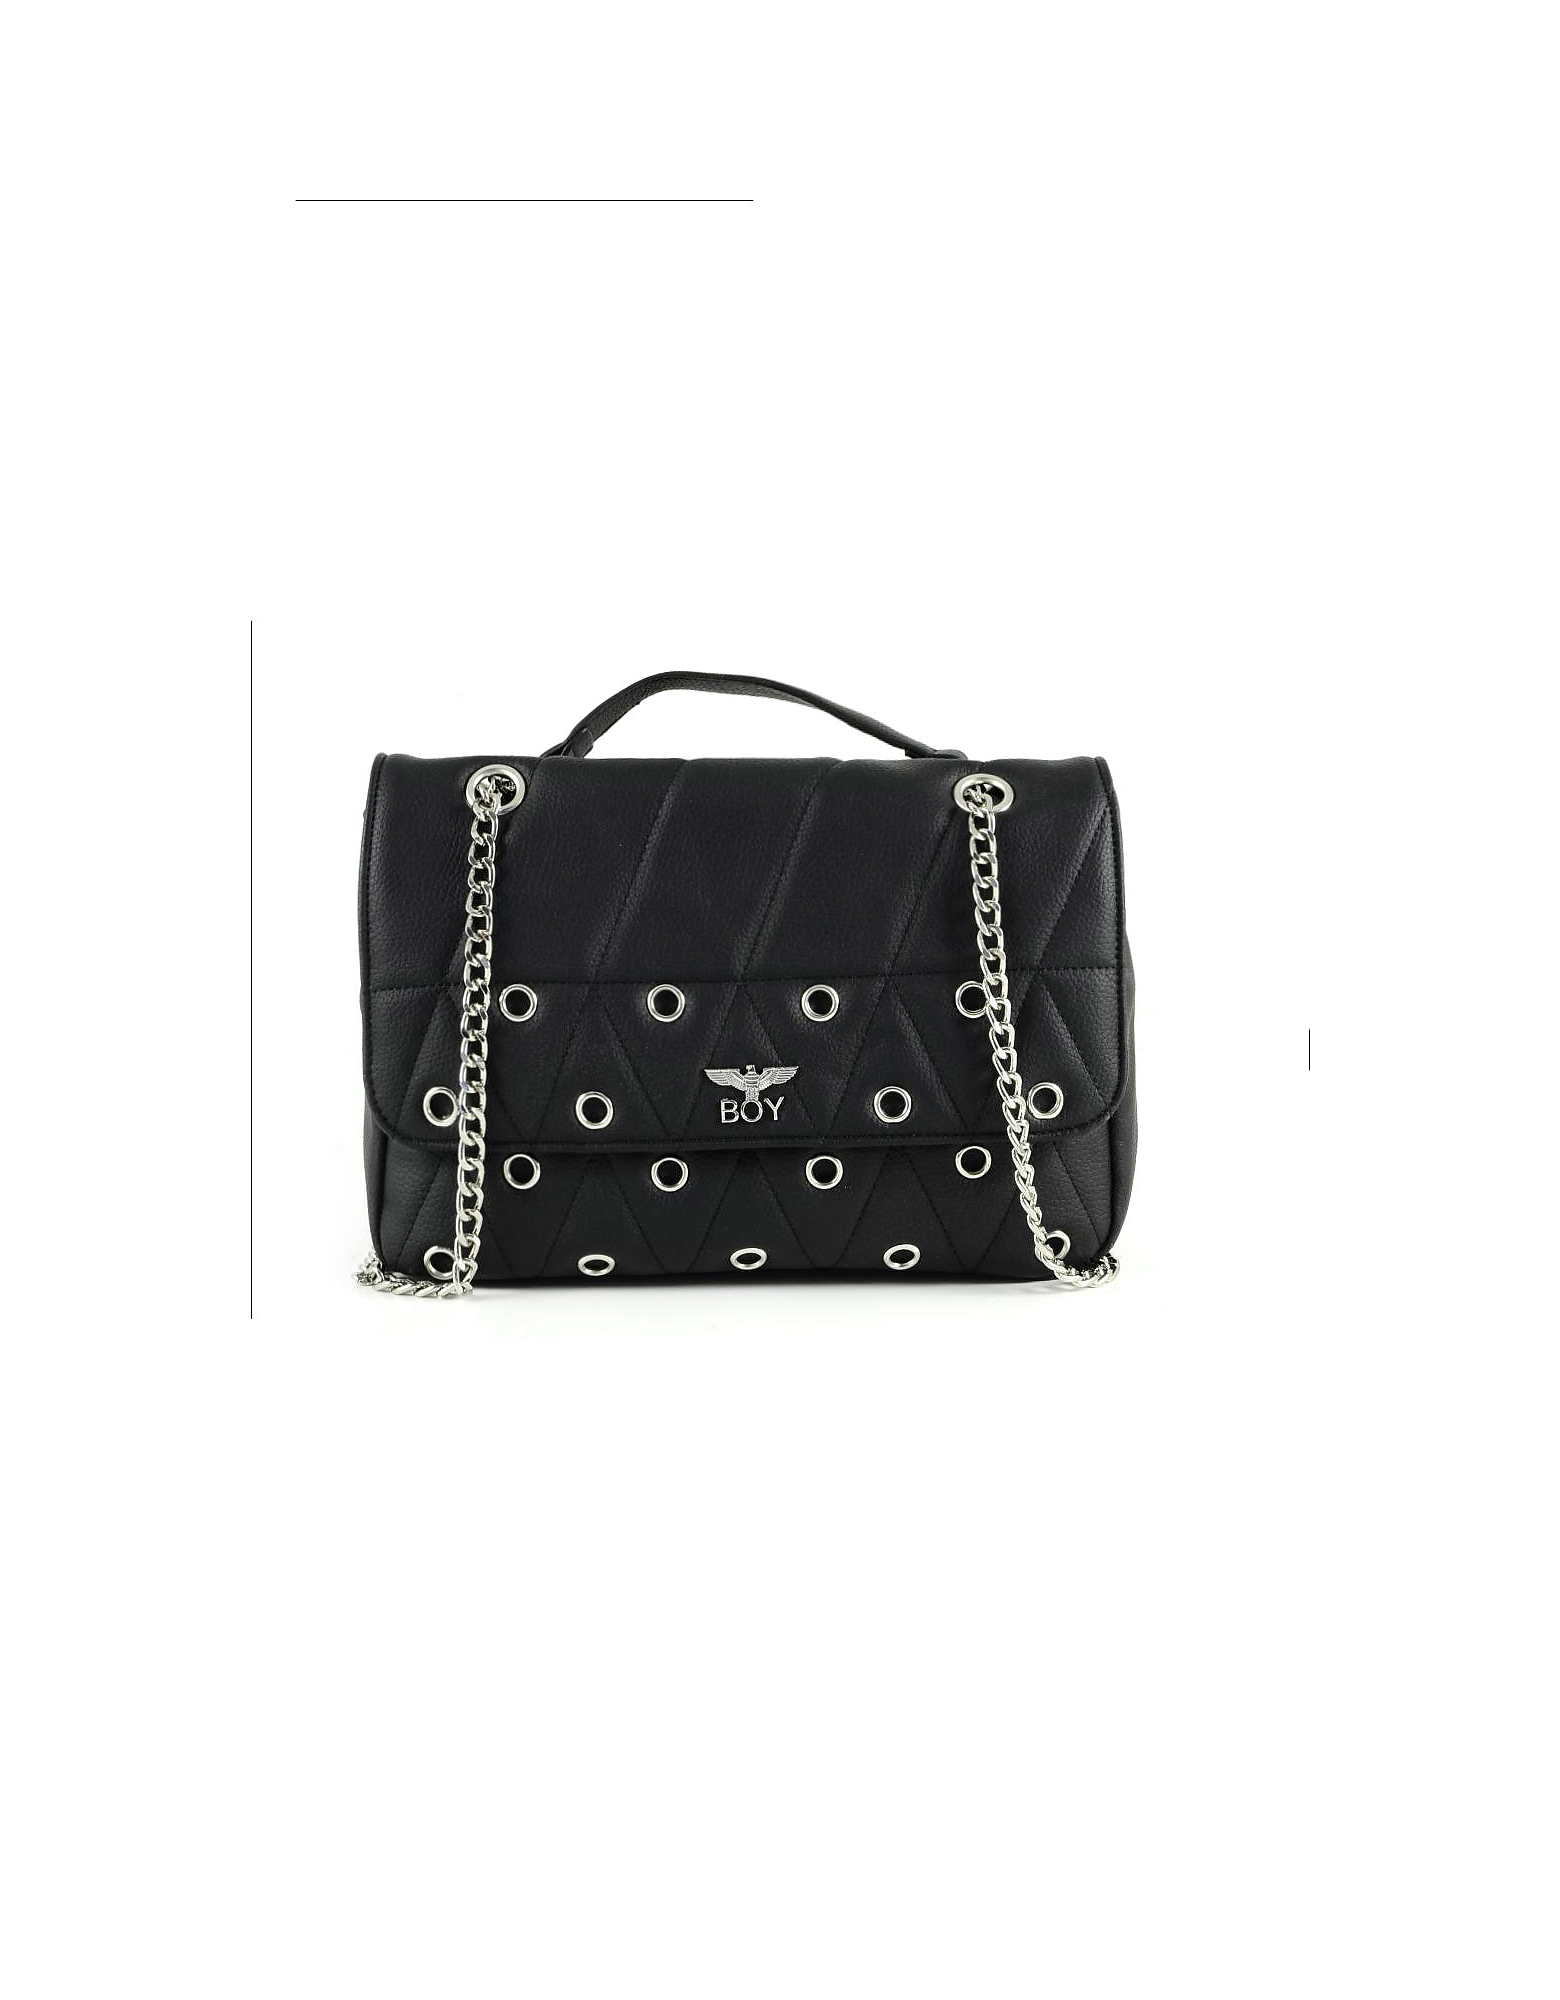 BOY London Designer Handbags, Black Synthetic W/Grommets Leather Shoulder Bag